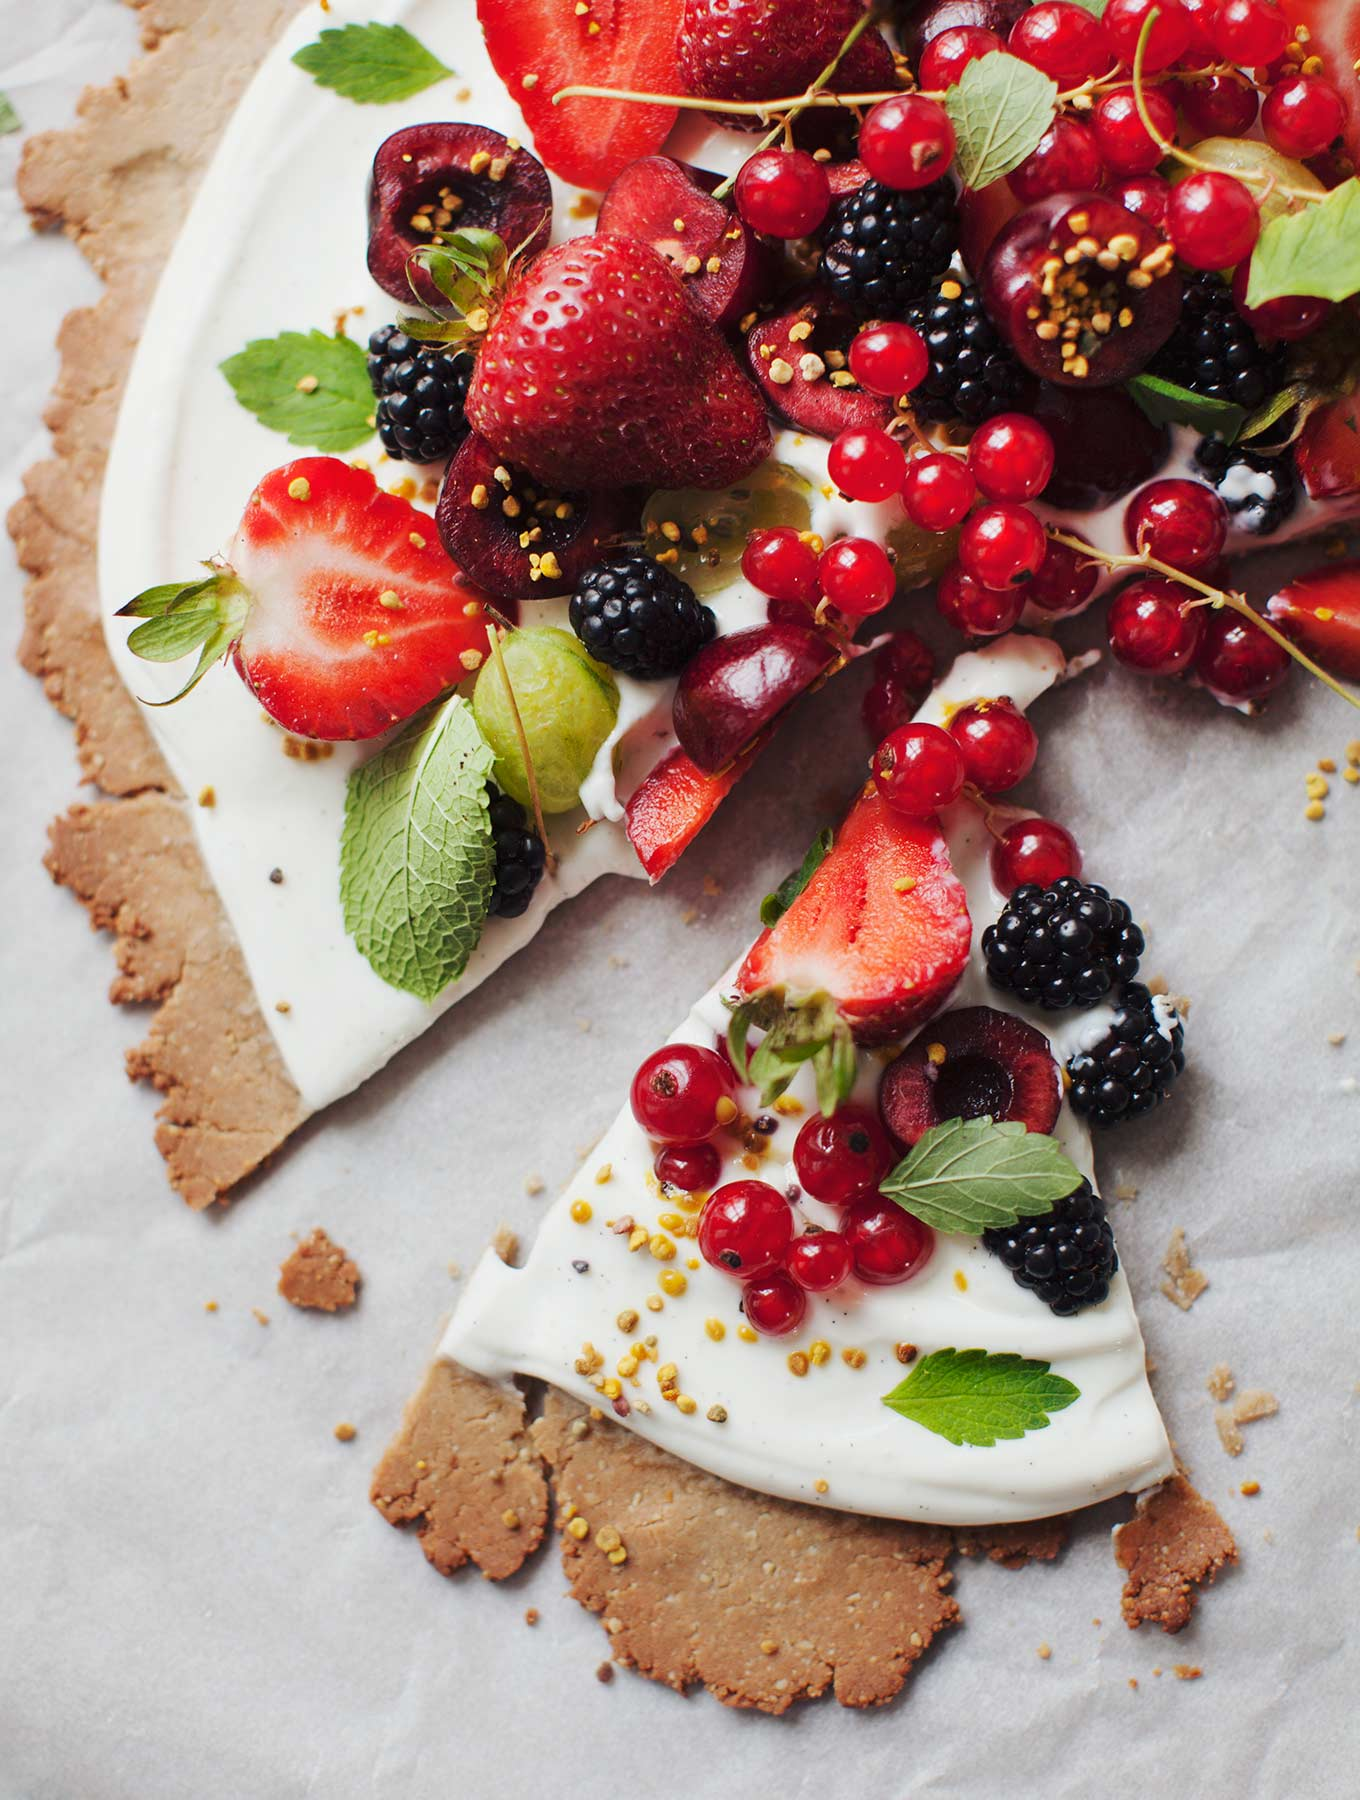 Summer Celebration Fruit Tart